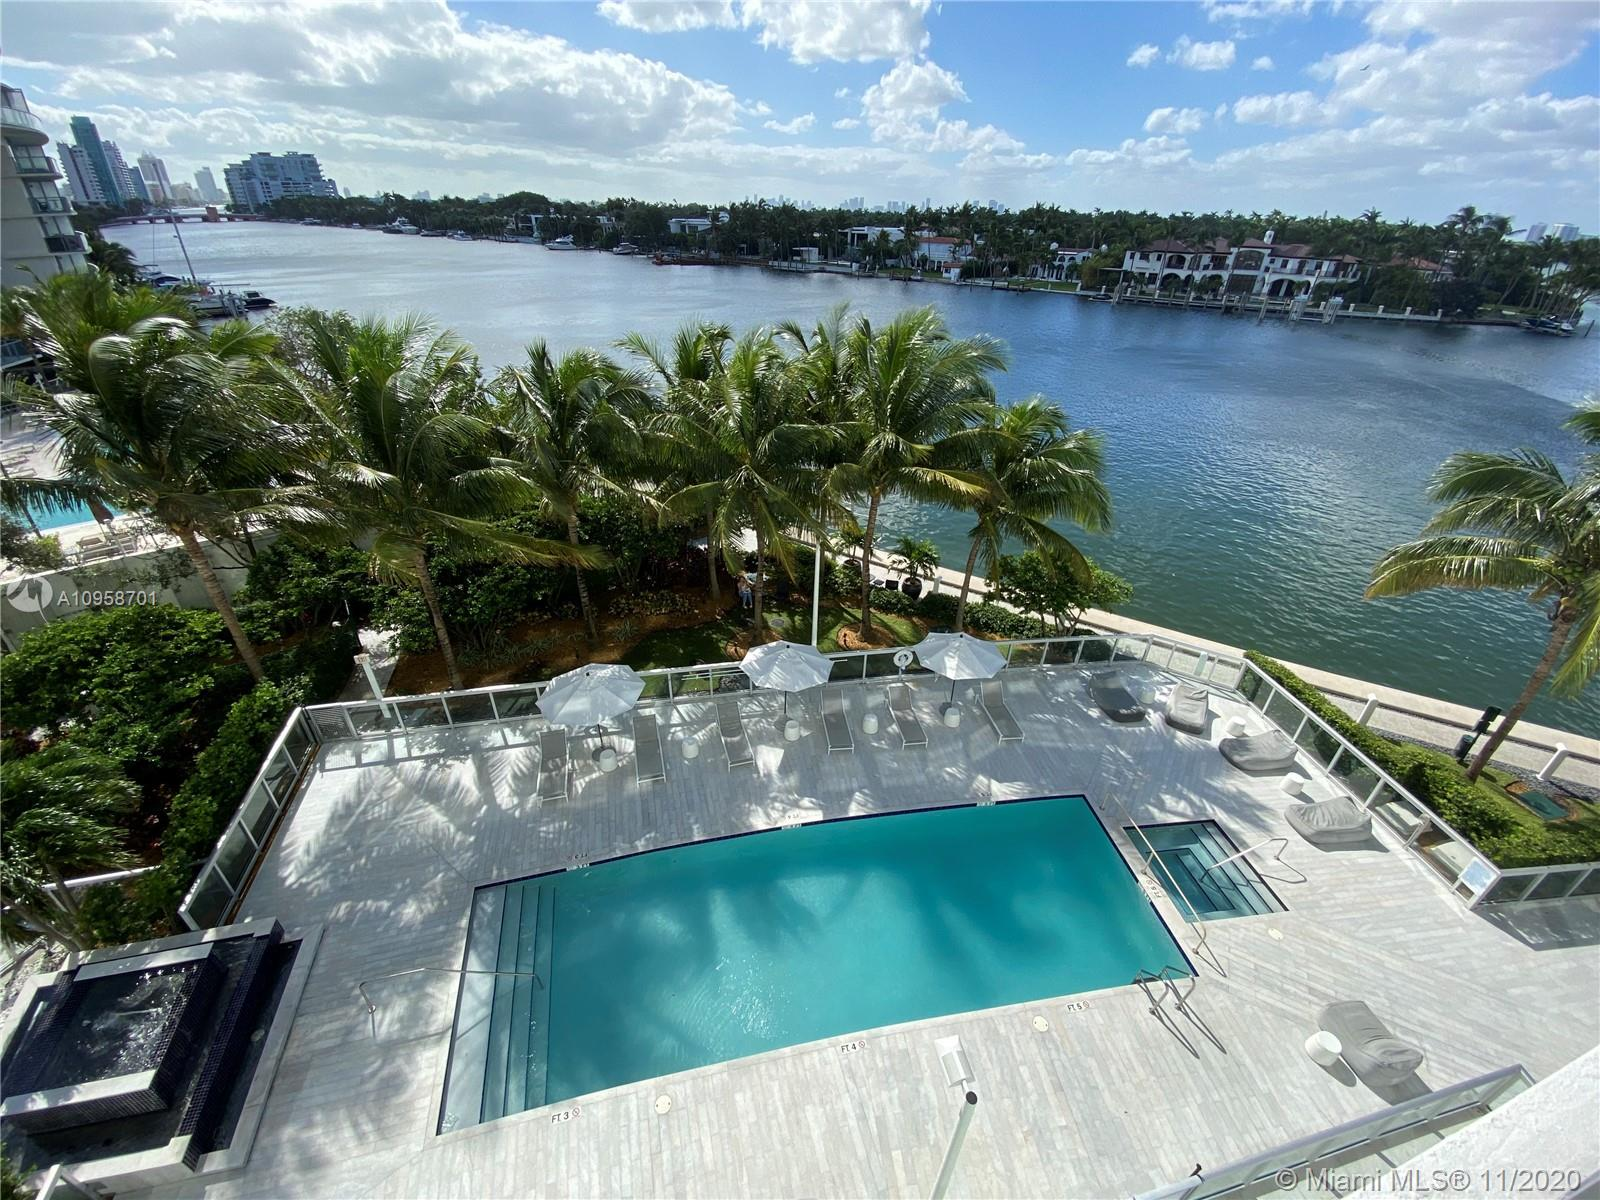 Eden House #506 - 6700 Indian Creek #506, Miami Beach, FL 33141